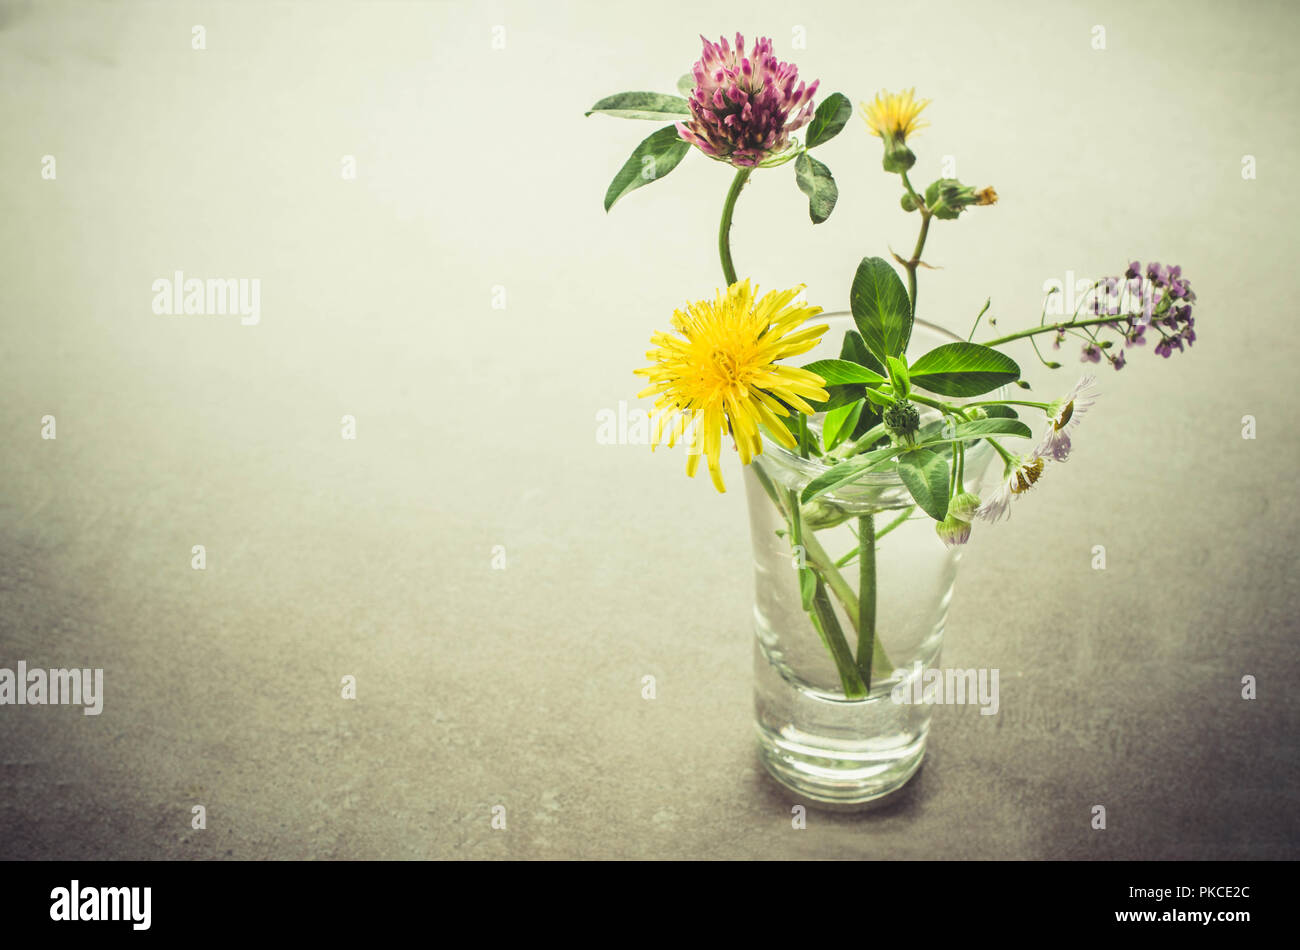 A small bouquet of wildflowers in a glass. Vintage toned image. - Stock Image